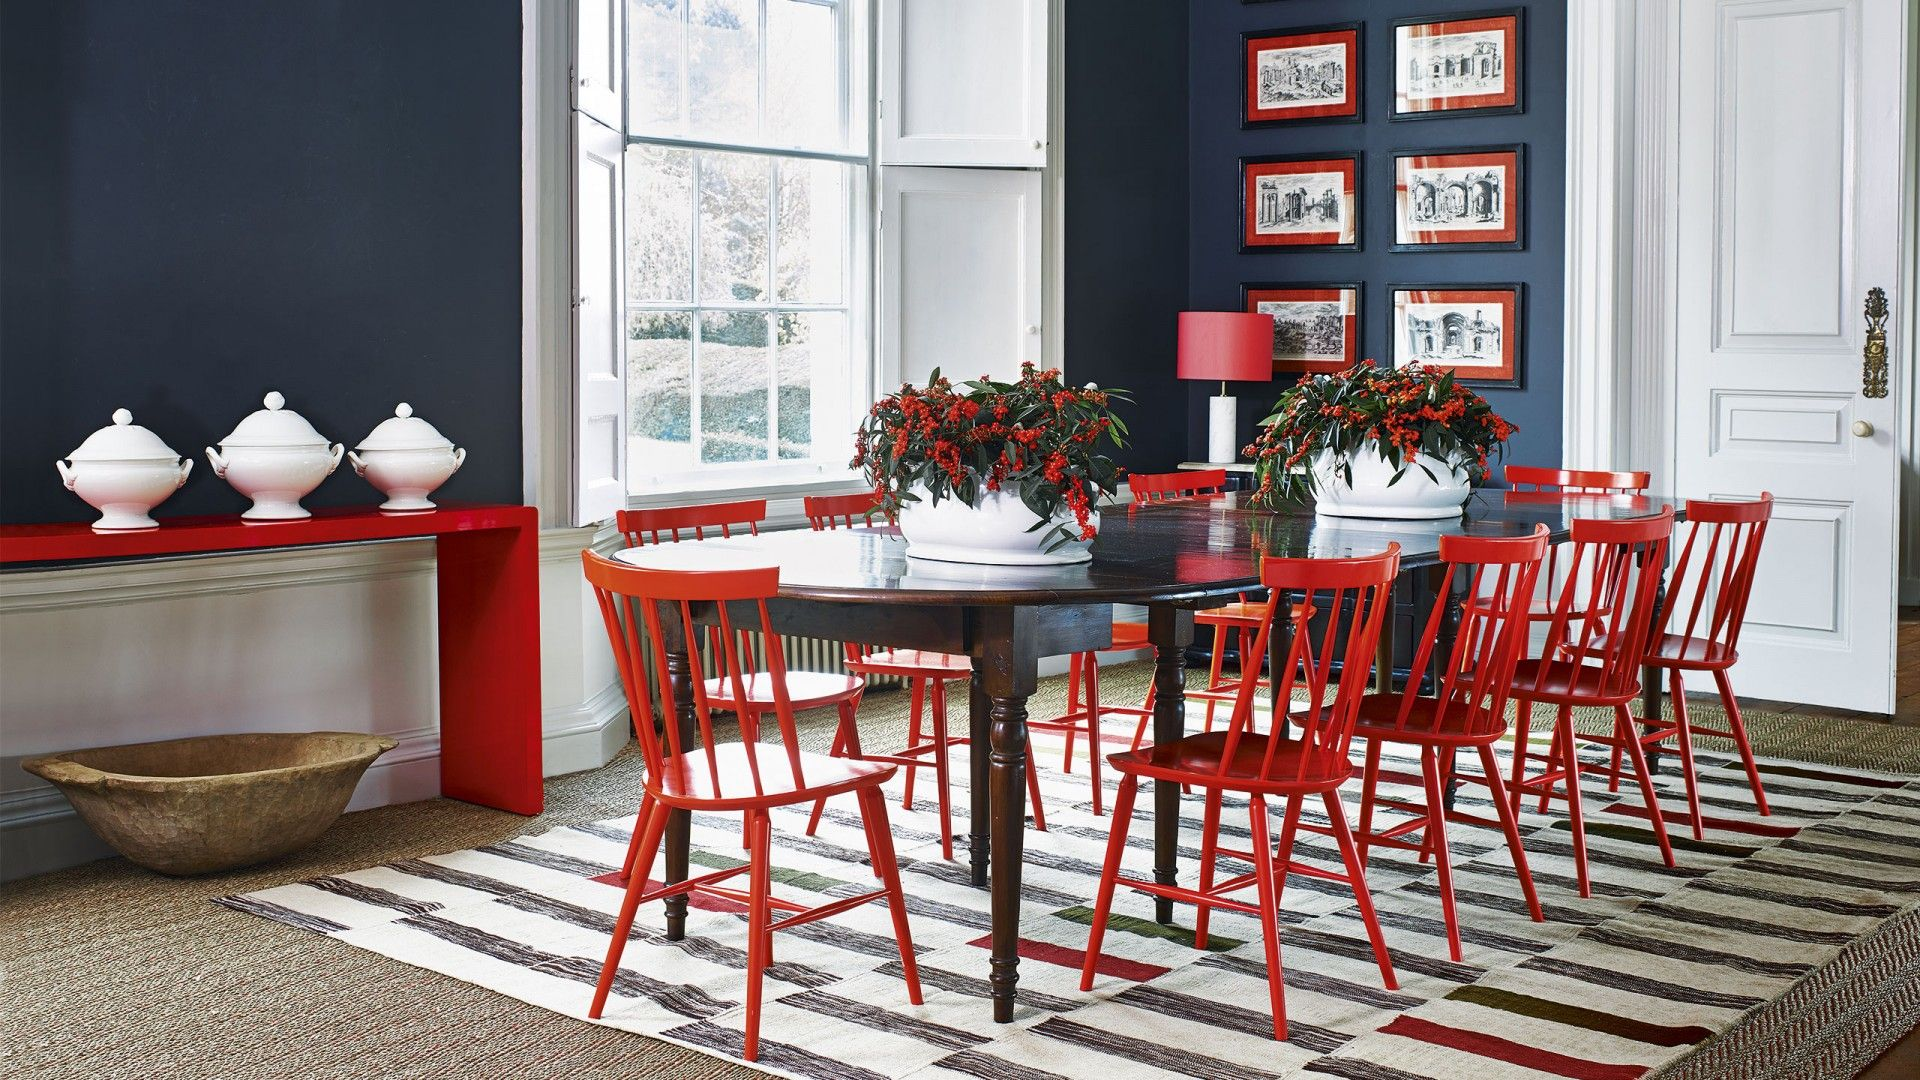 Be brave in your dining room with the brightest of reds on furniture and accessories. Chairs, console and framed antique prints punctuate this rich grey interior in no-holds-barred cadmium. The grand proportions of the room carry off this striking combination with aplomb.